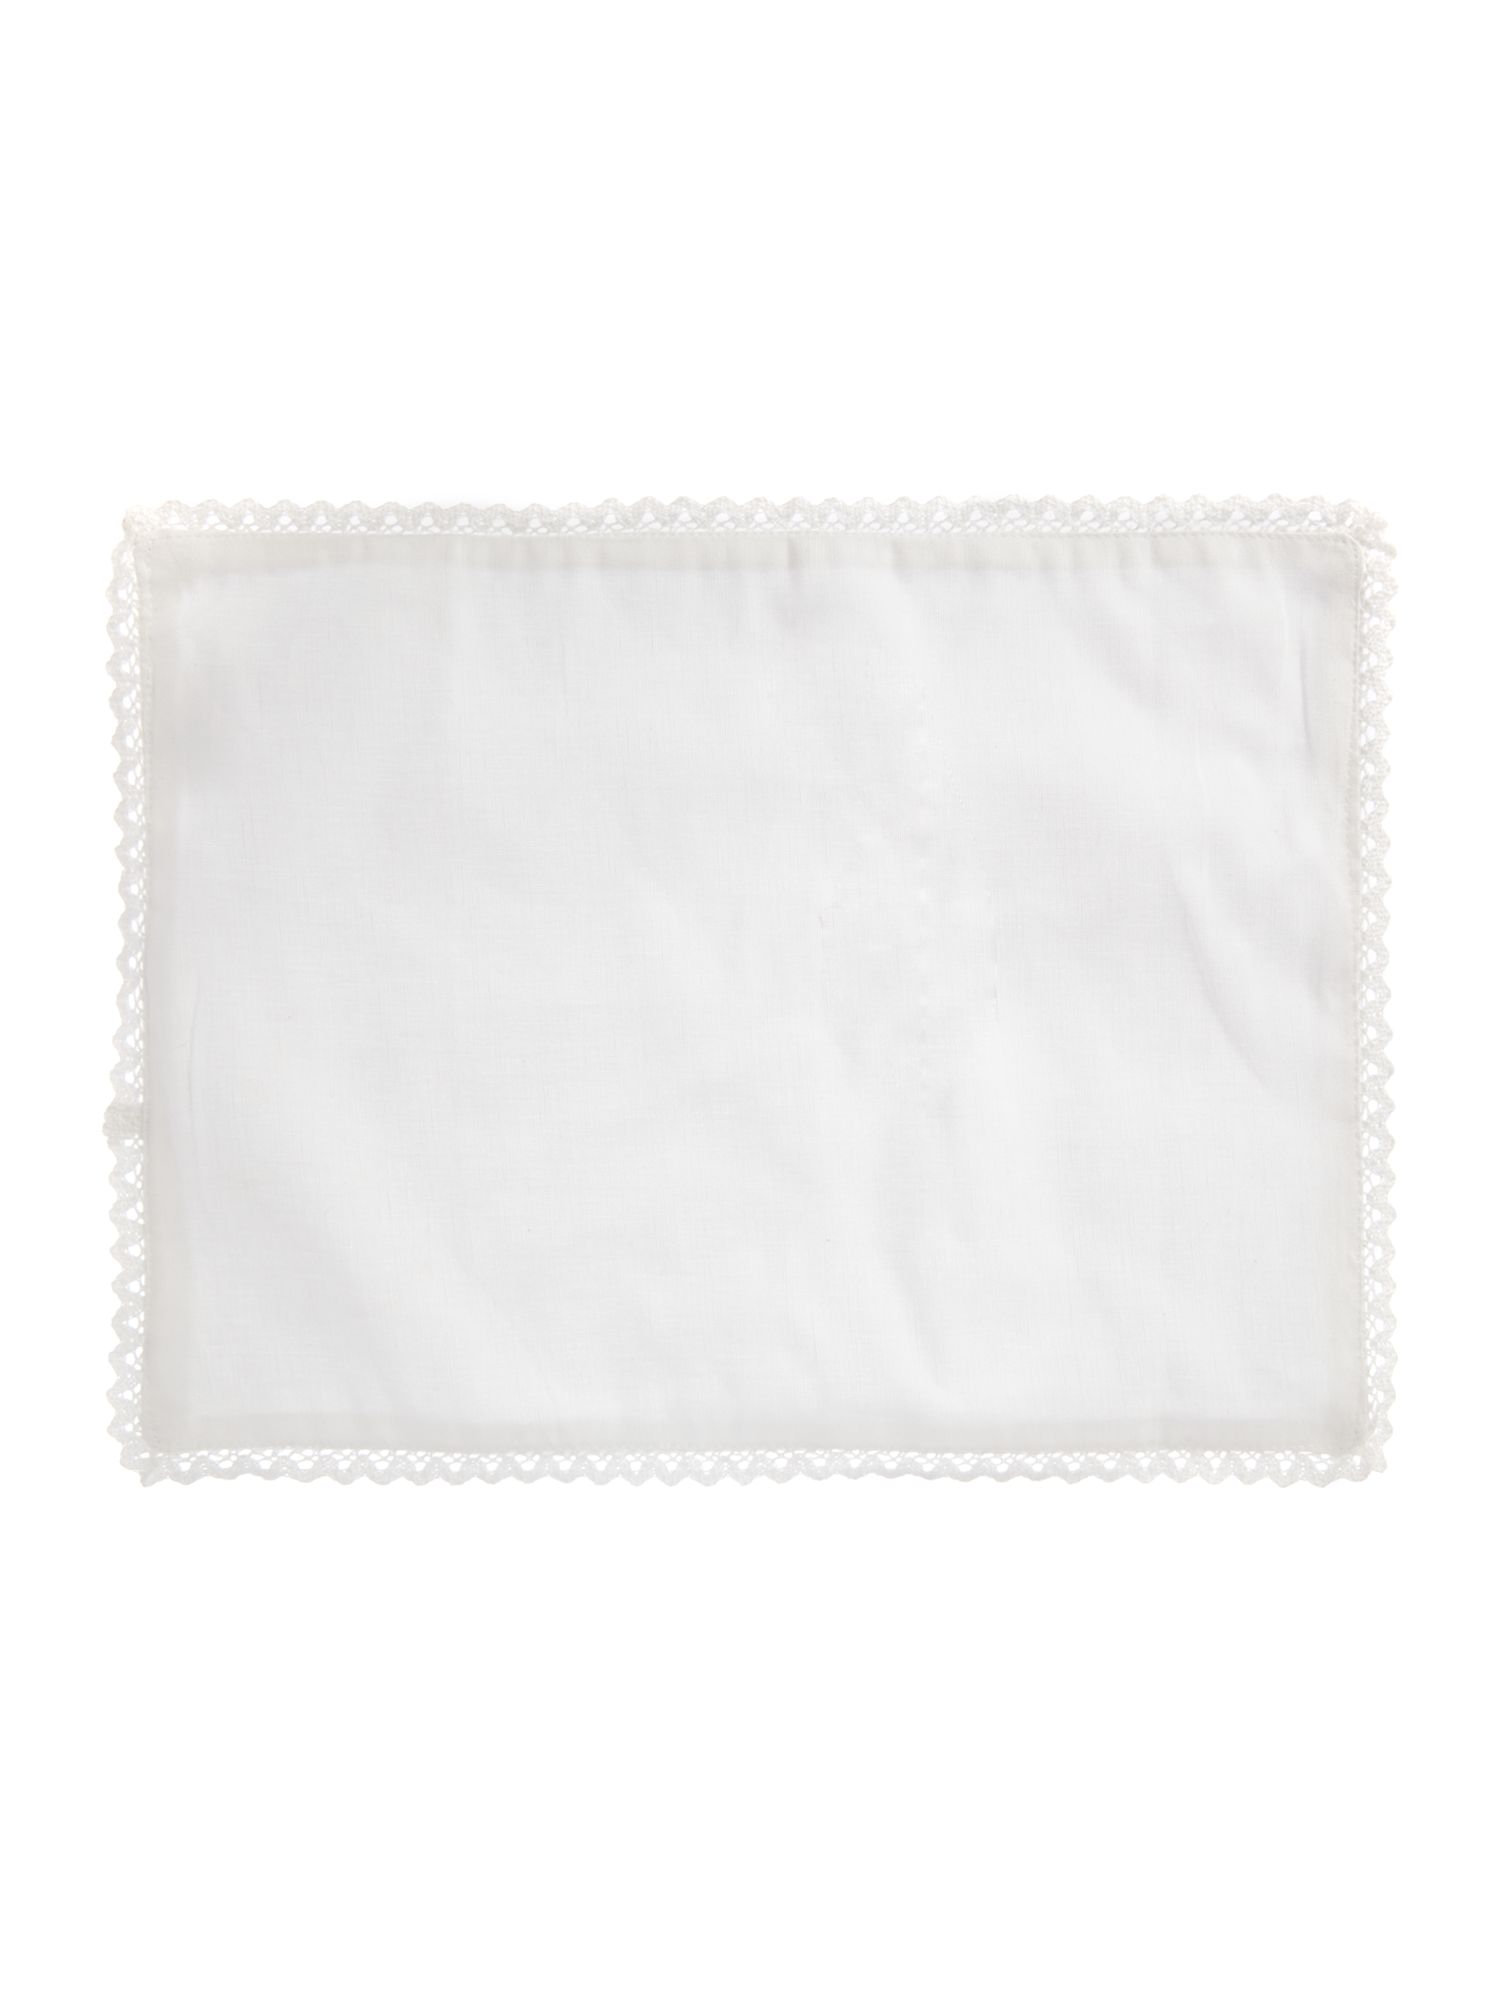 Shabby Chic Shabby Chic White lace cotton linen placemats set